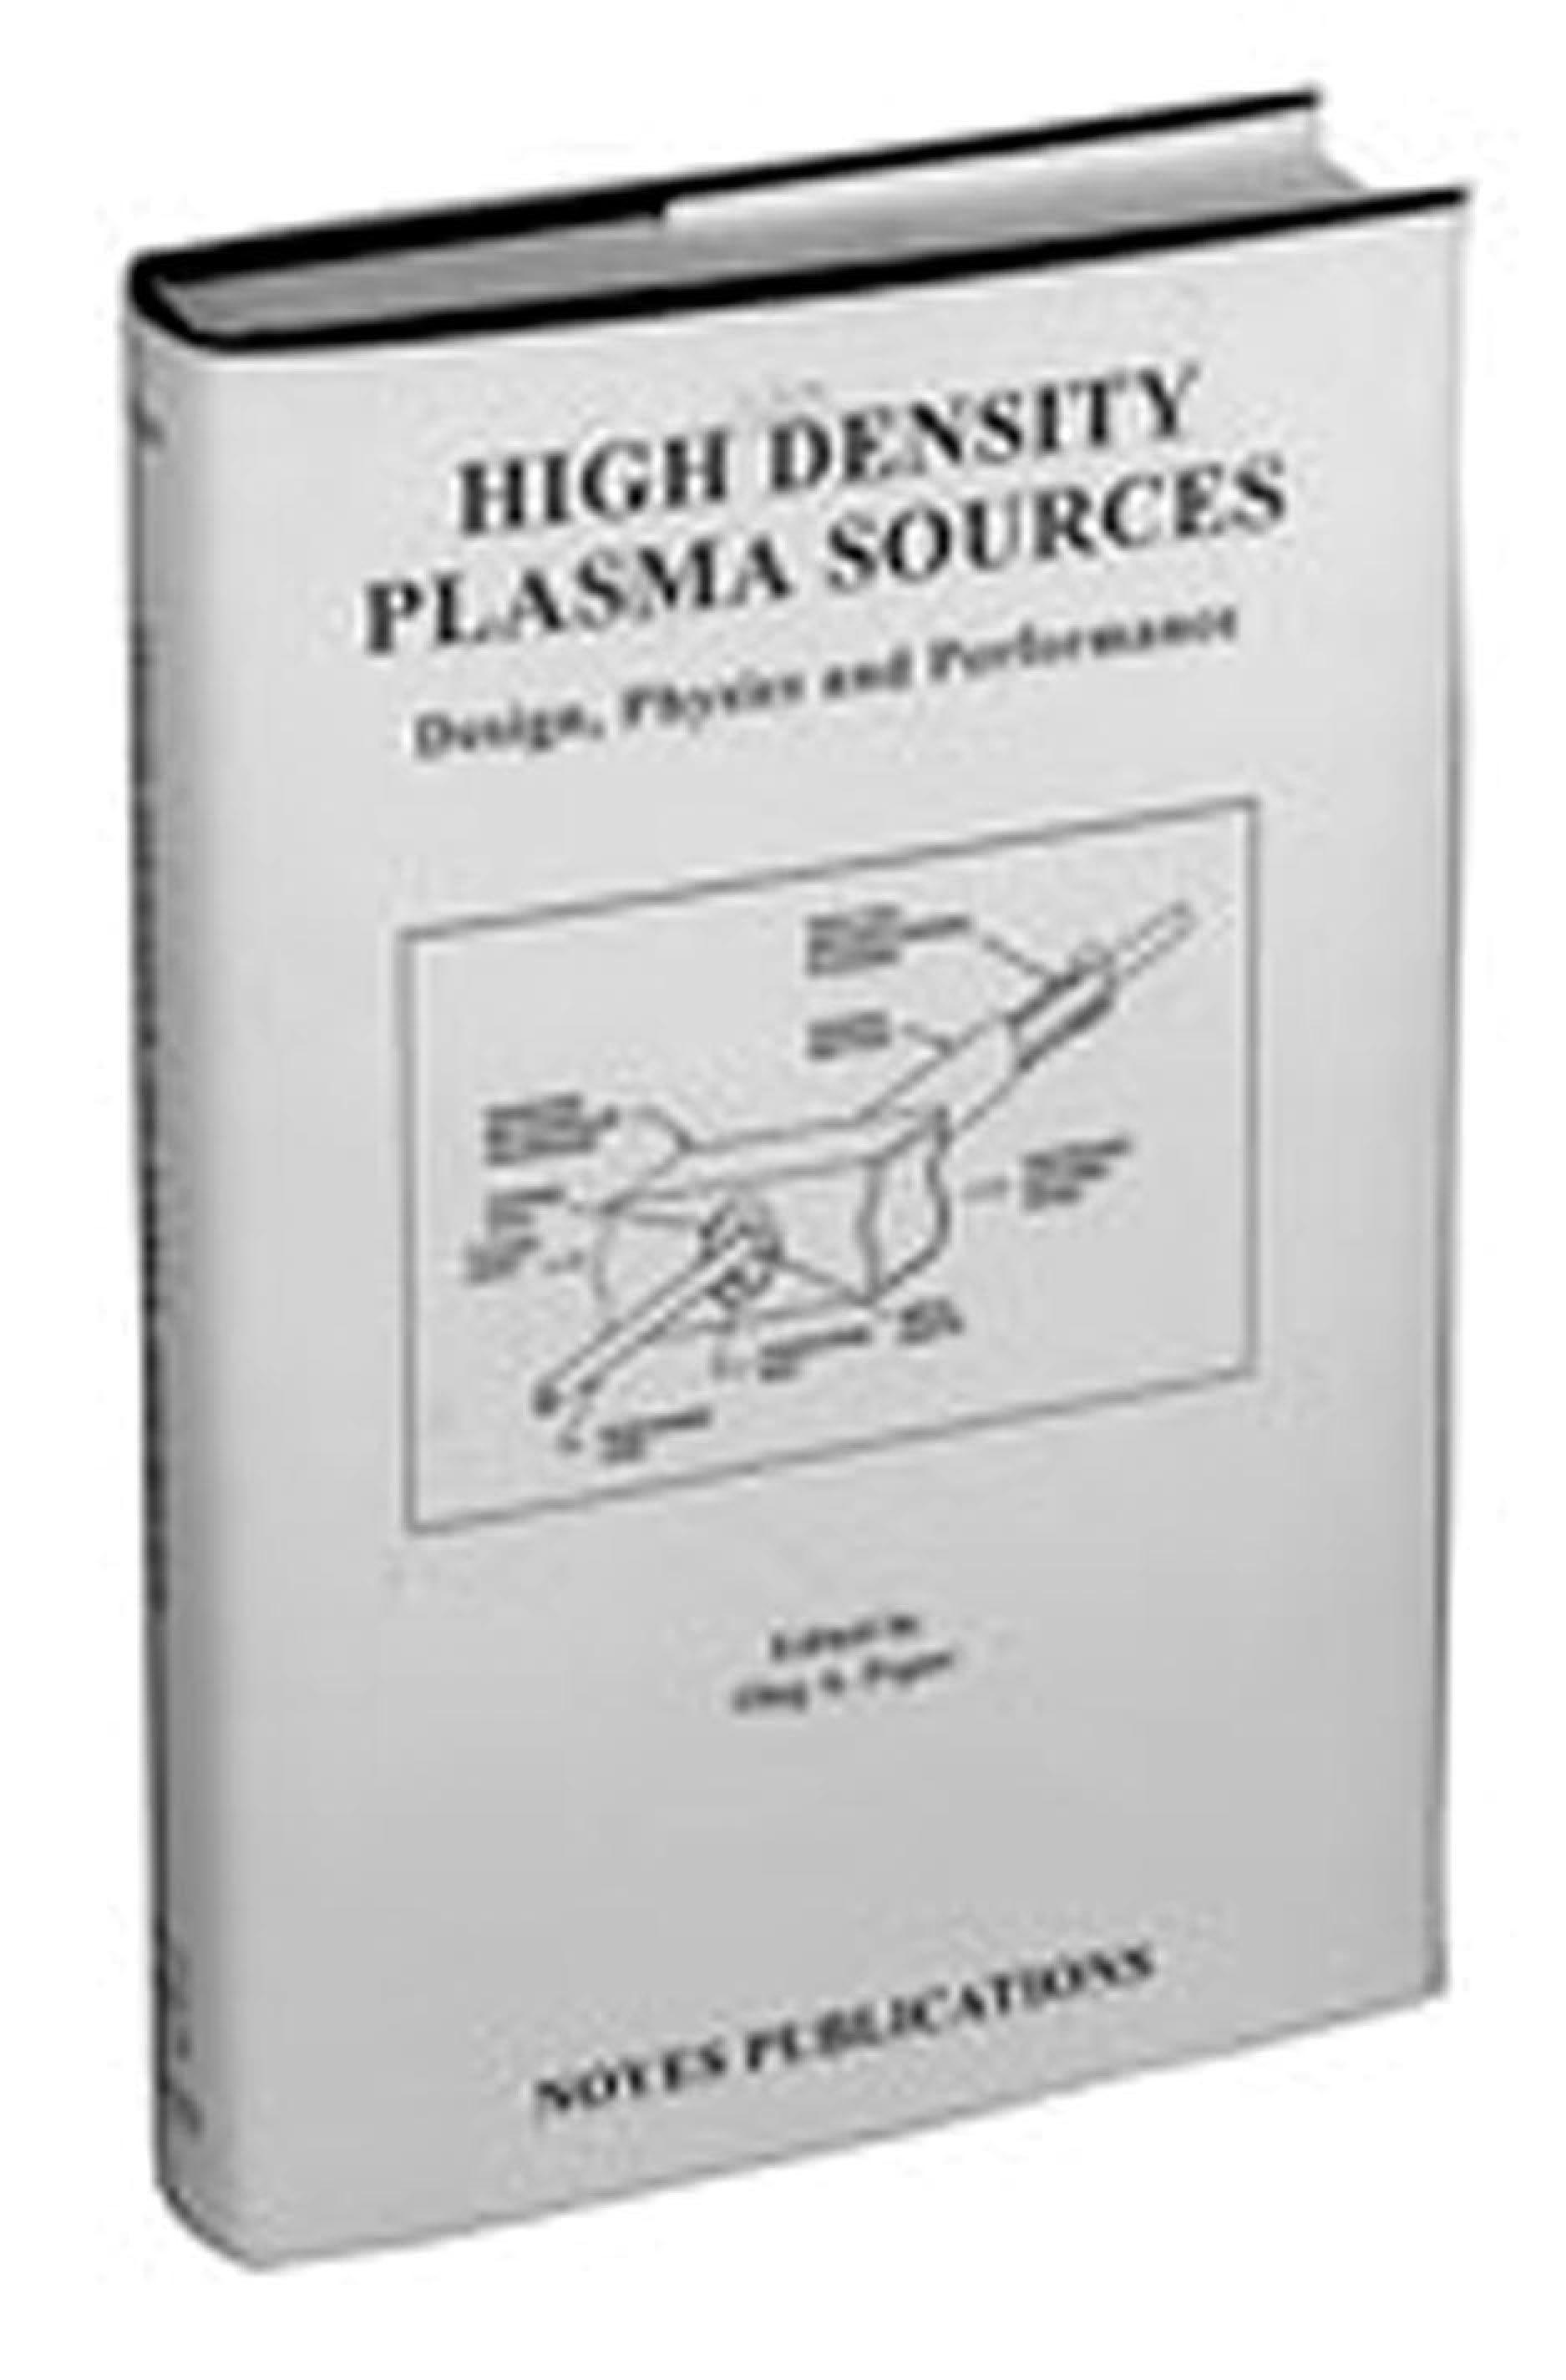 High Density Plasma Sources: Design, Physics and Performance